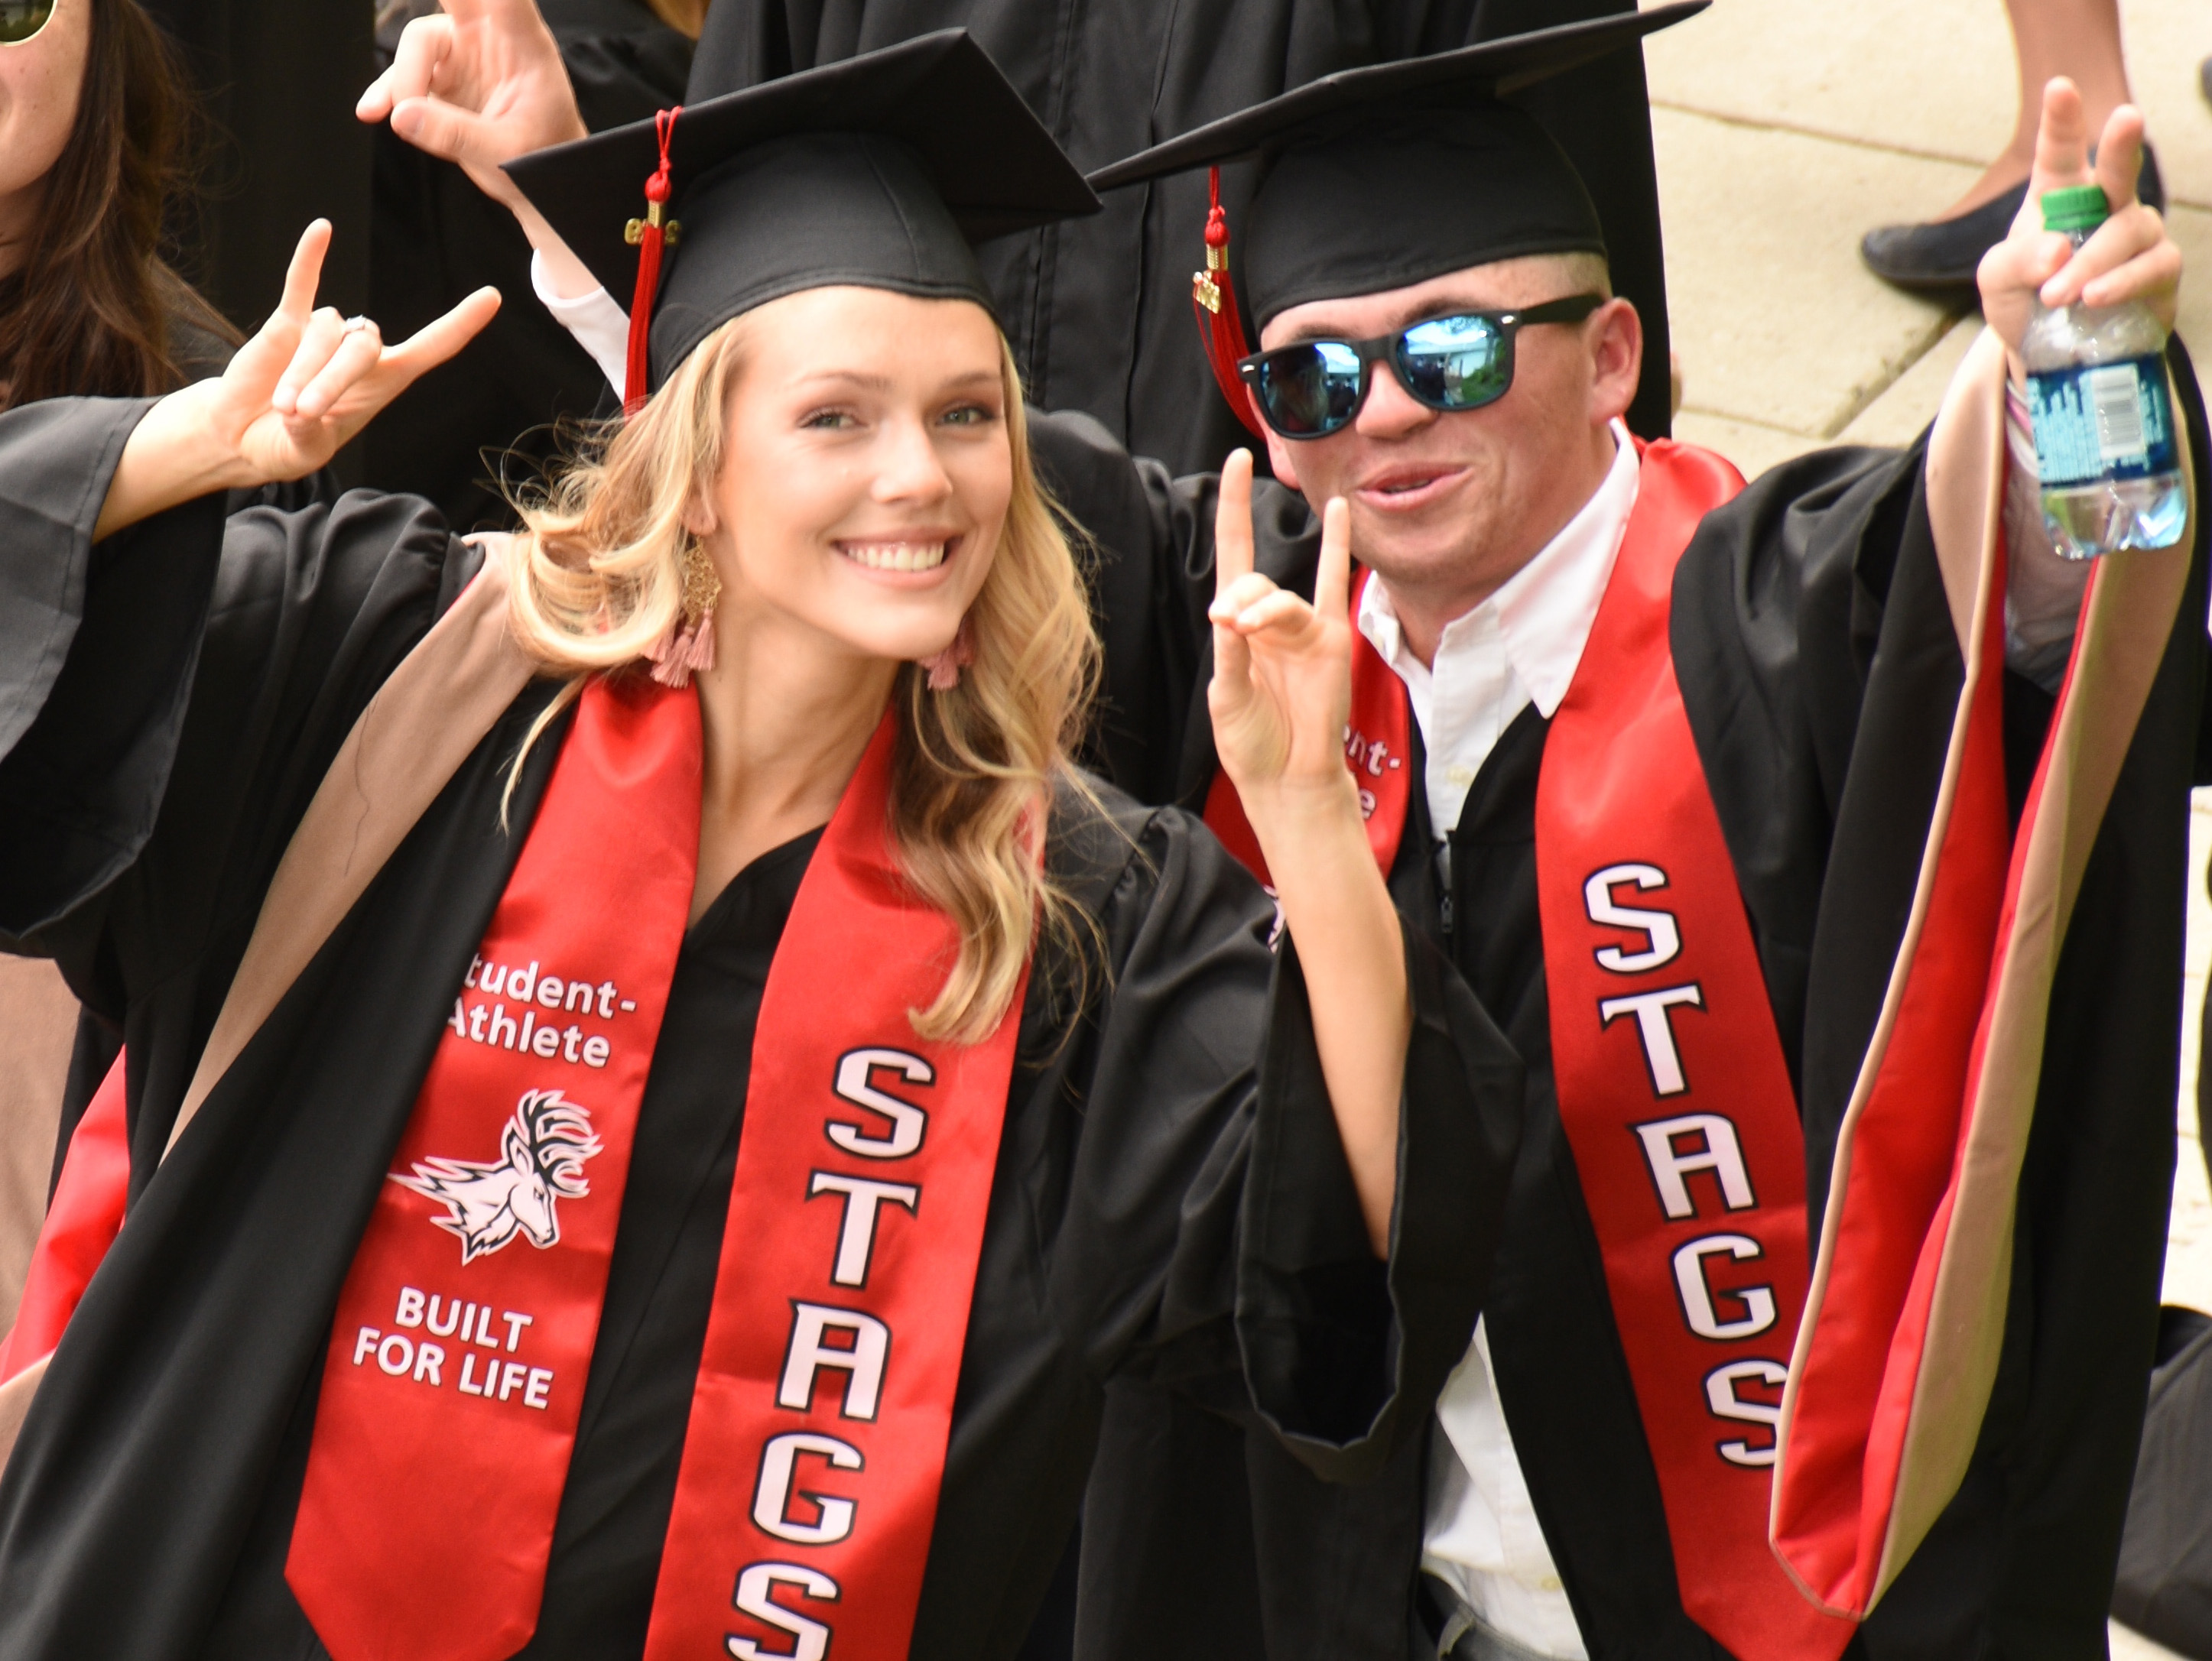 Fairfield University Class of 2019 Stag graduates posing and smiling for the camera